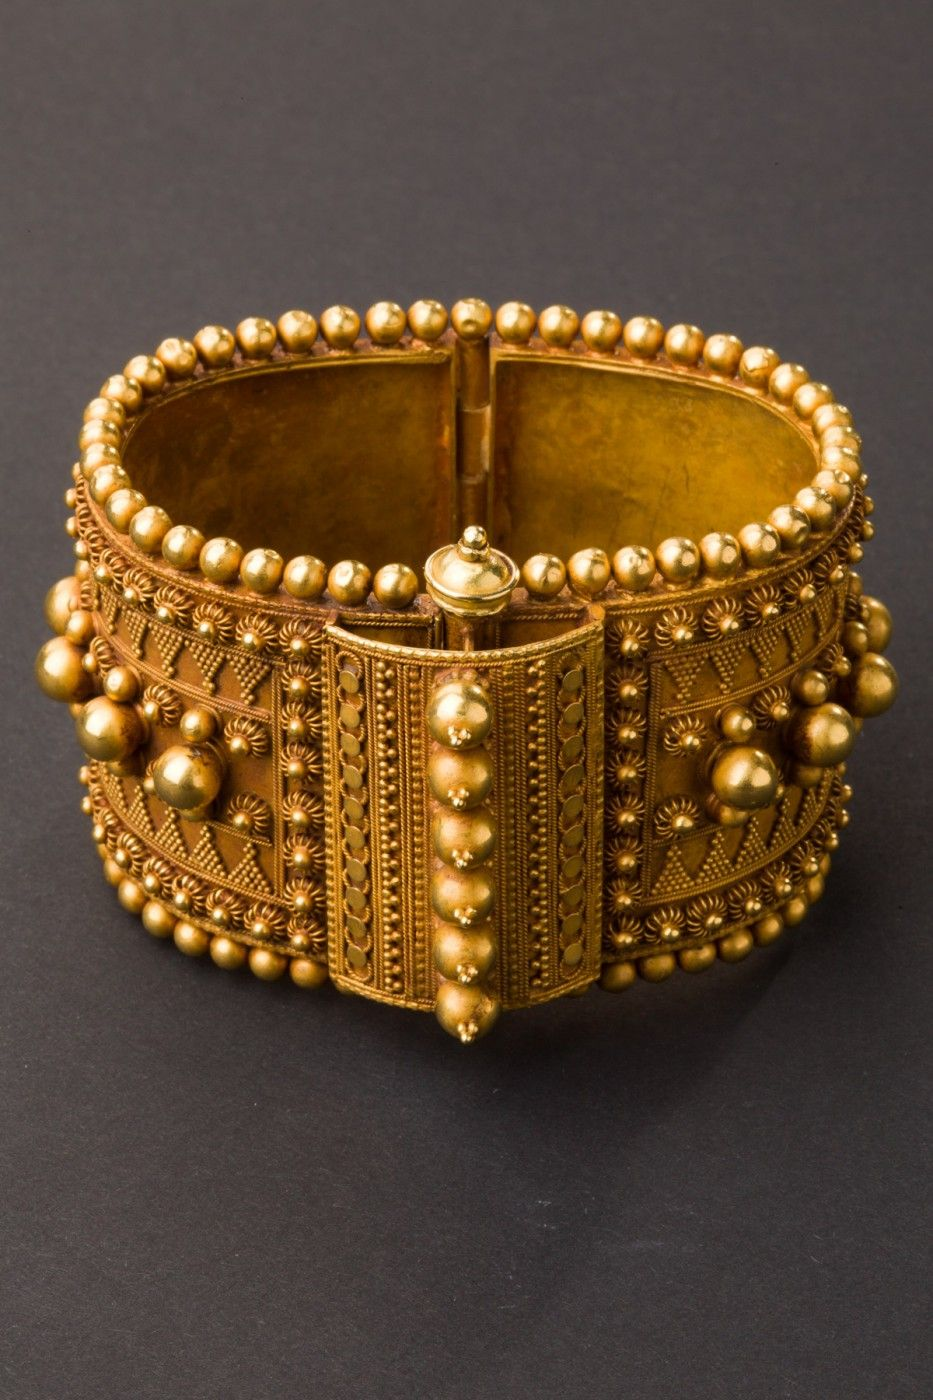 Tamil Nadu South India 22kt Gold Bracelet Ca Beginning Of The 1900s